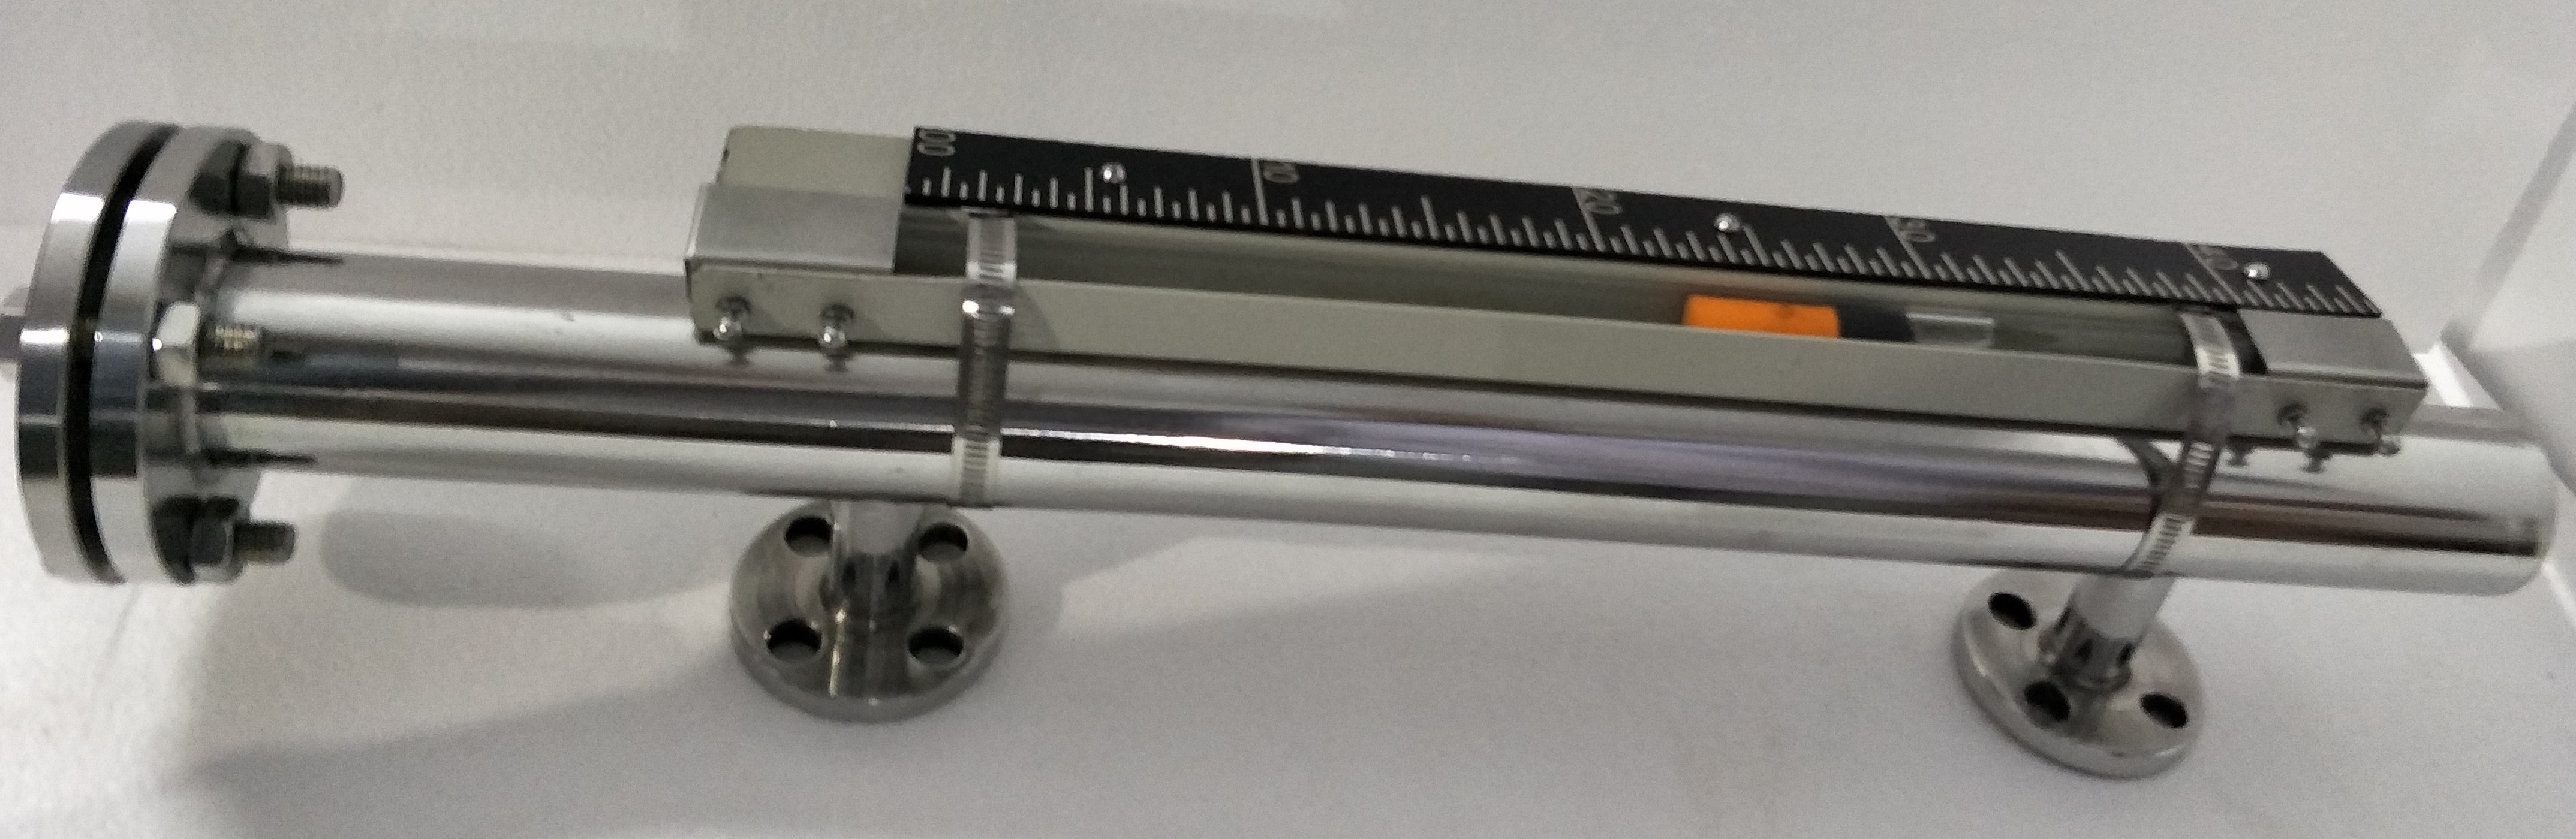 Magnetic Level Indicator